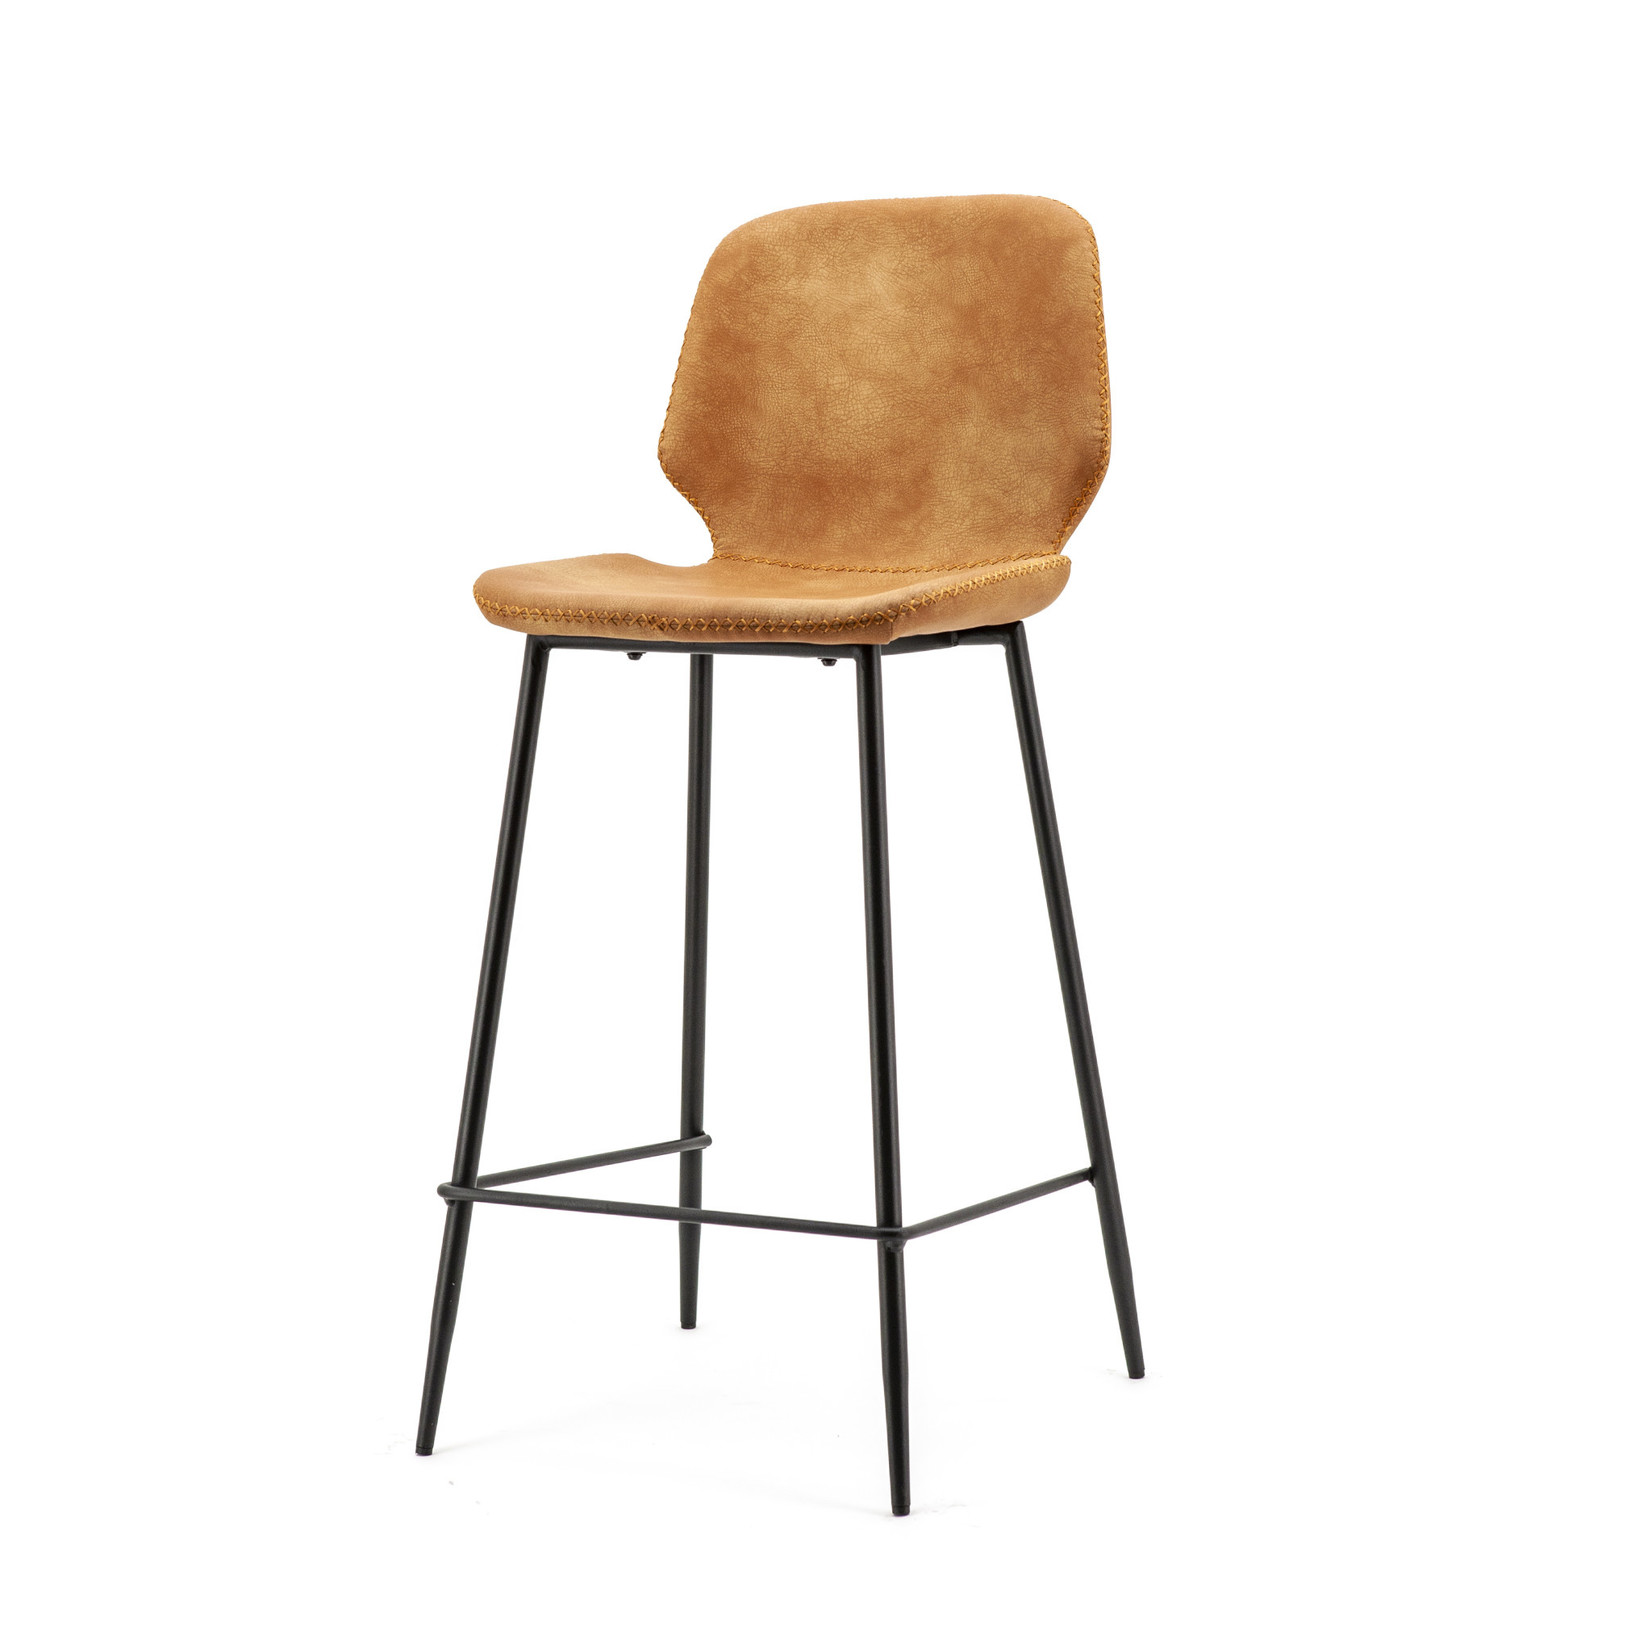 By Boo By Boo Barchair Seashell high - cognac